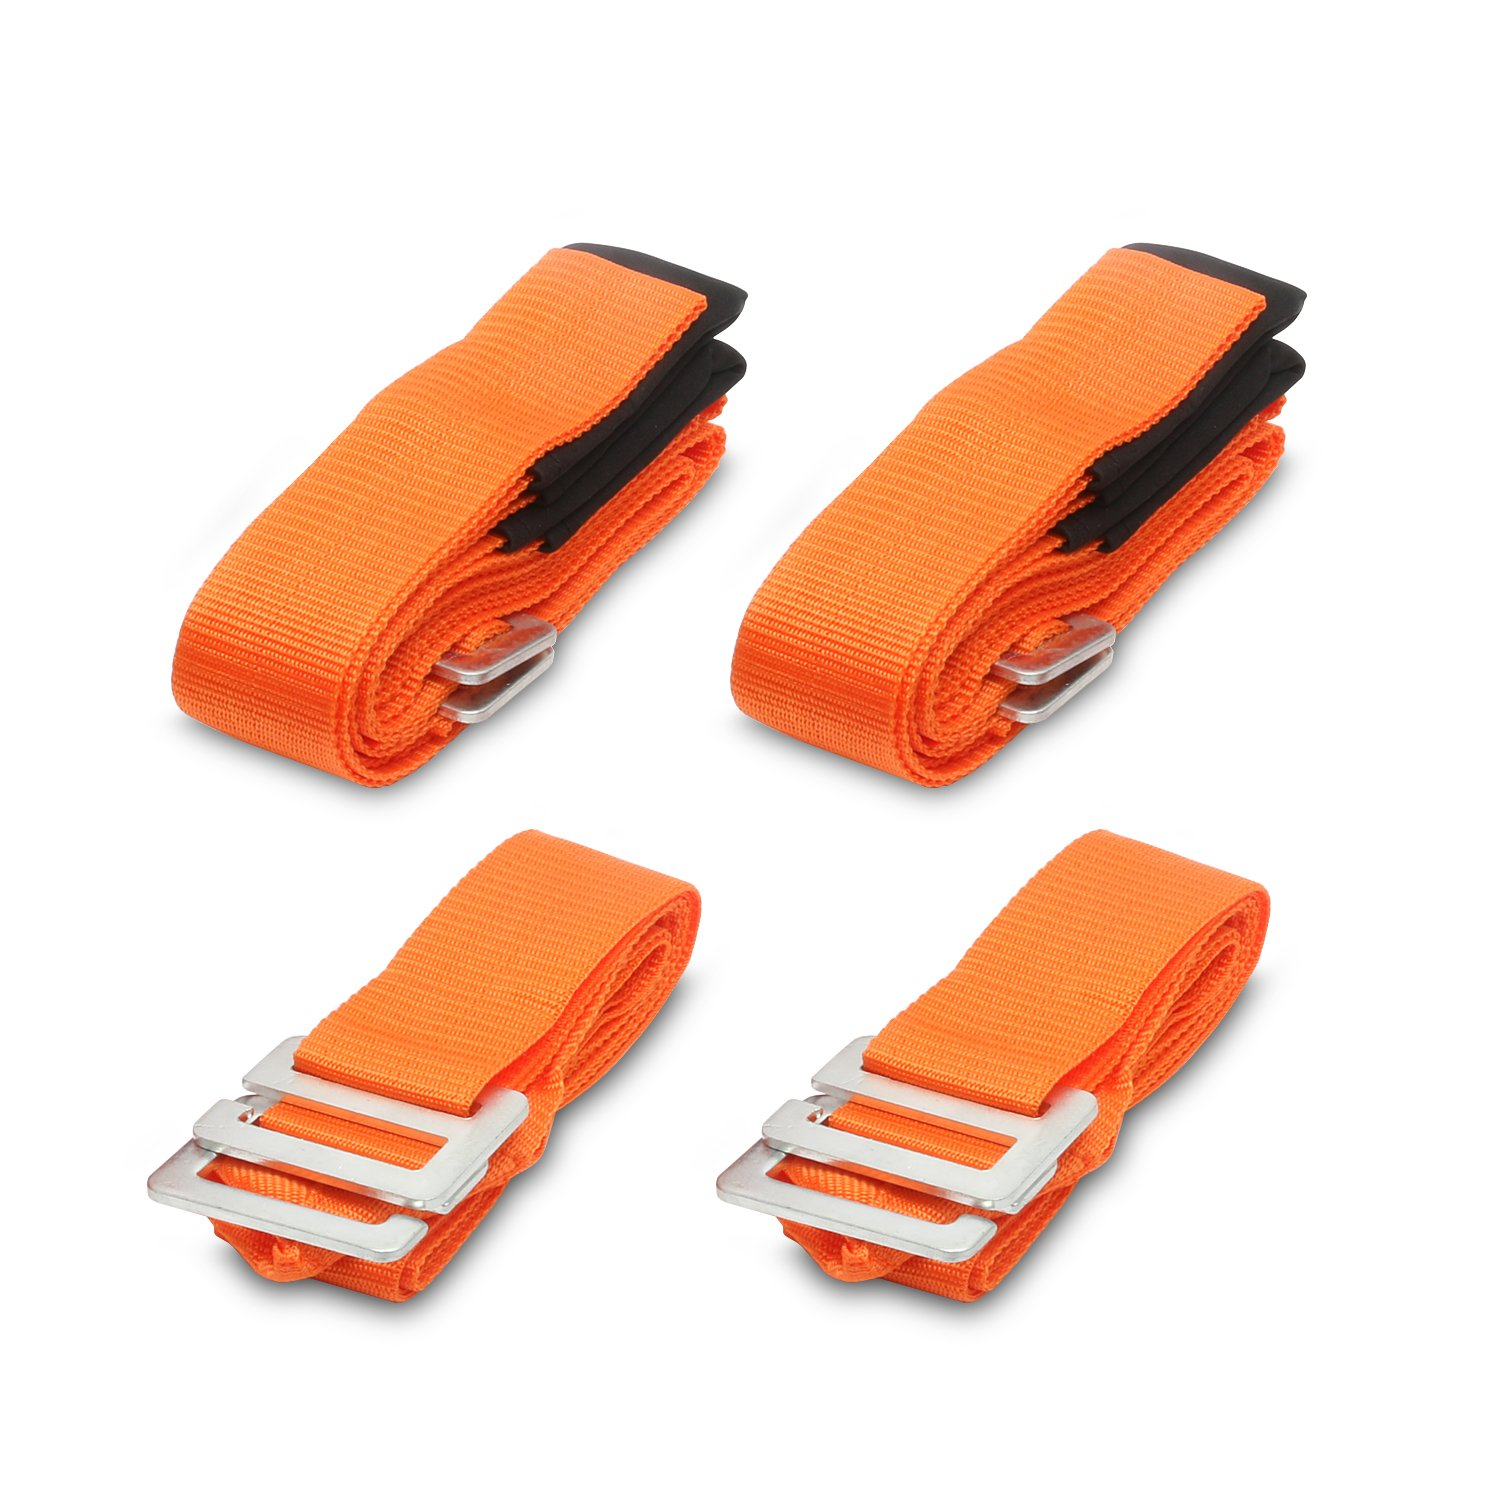 AOAFUN Forearm Forklift Lifting Straps Furniture Moving Belt for Lifting Bulky Items ,Easily Move, Lift, Carry, And Secure Furniture, Appliances,Mattresses, or Any Heavy Object.